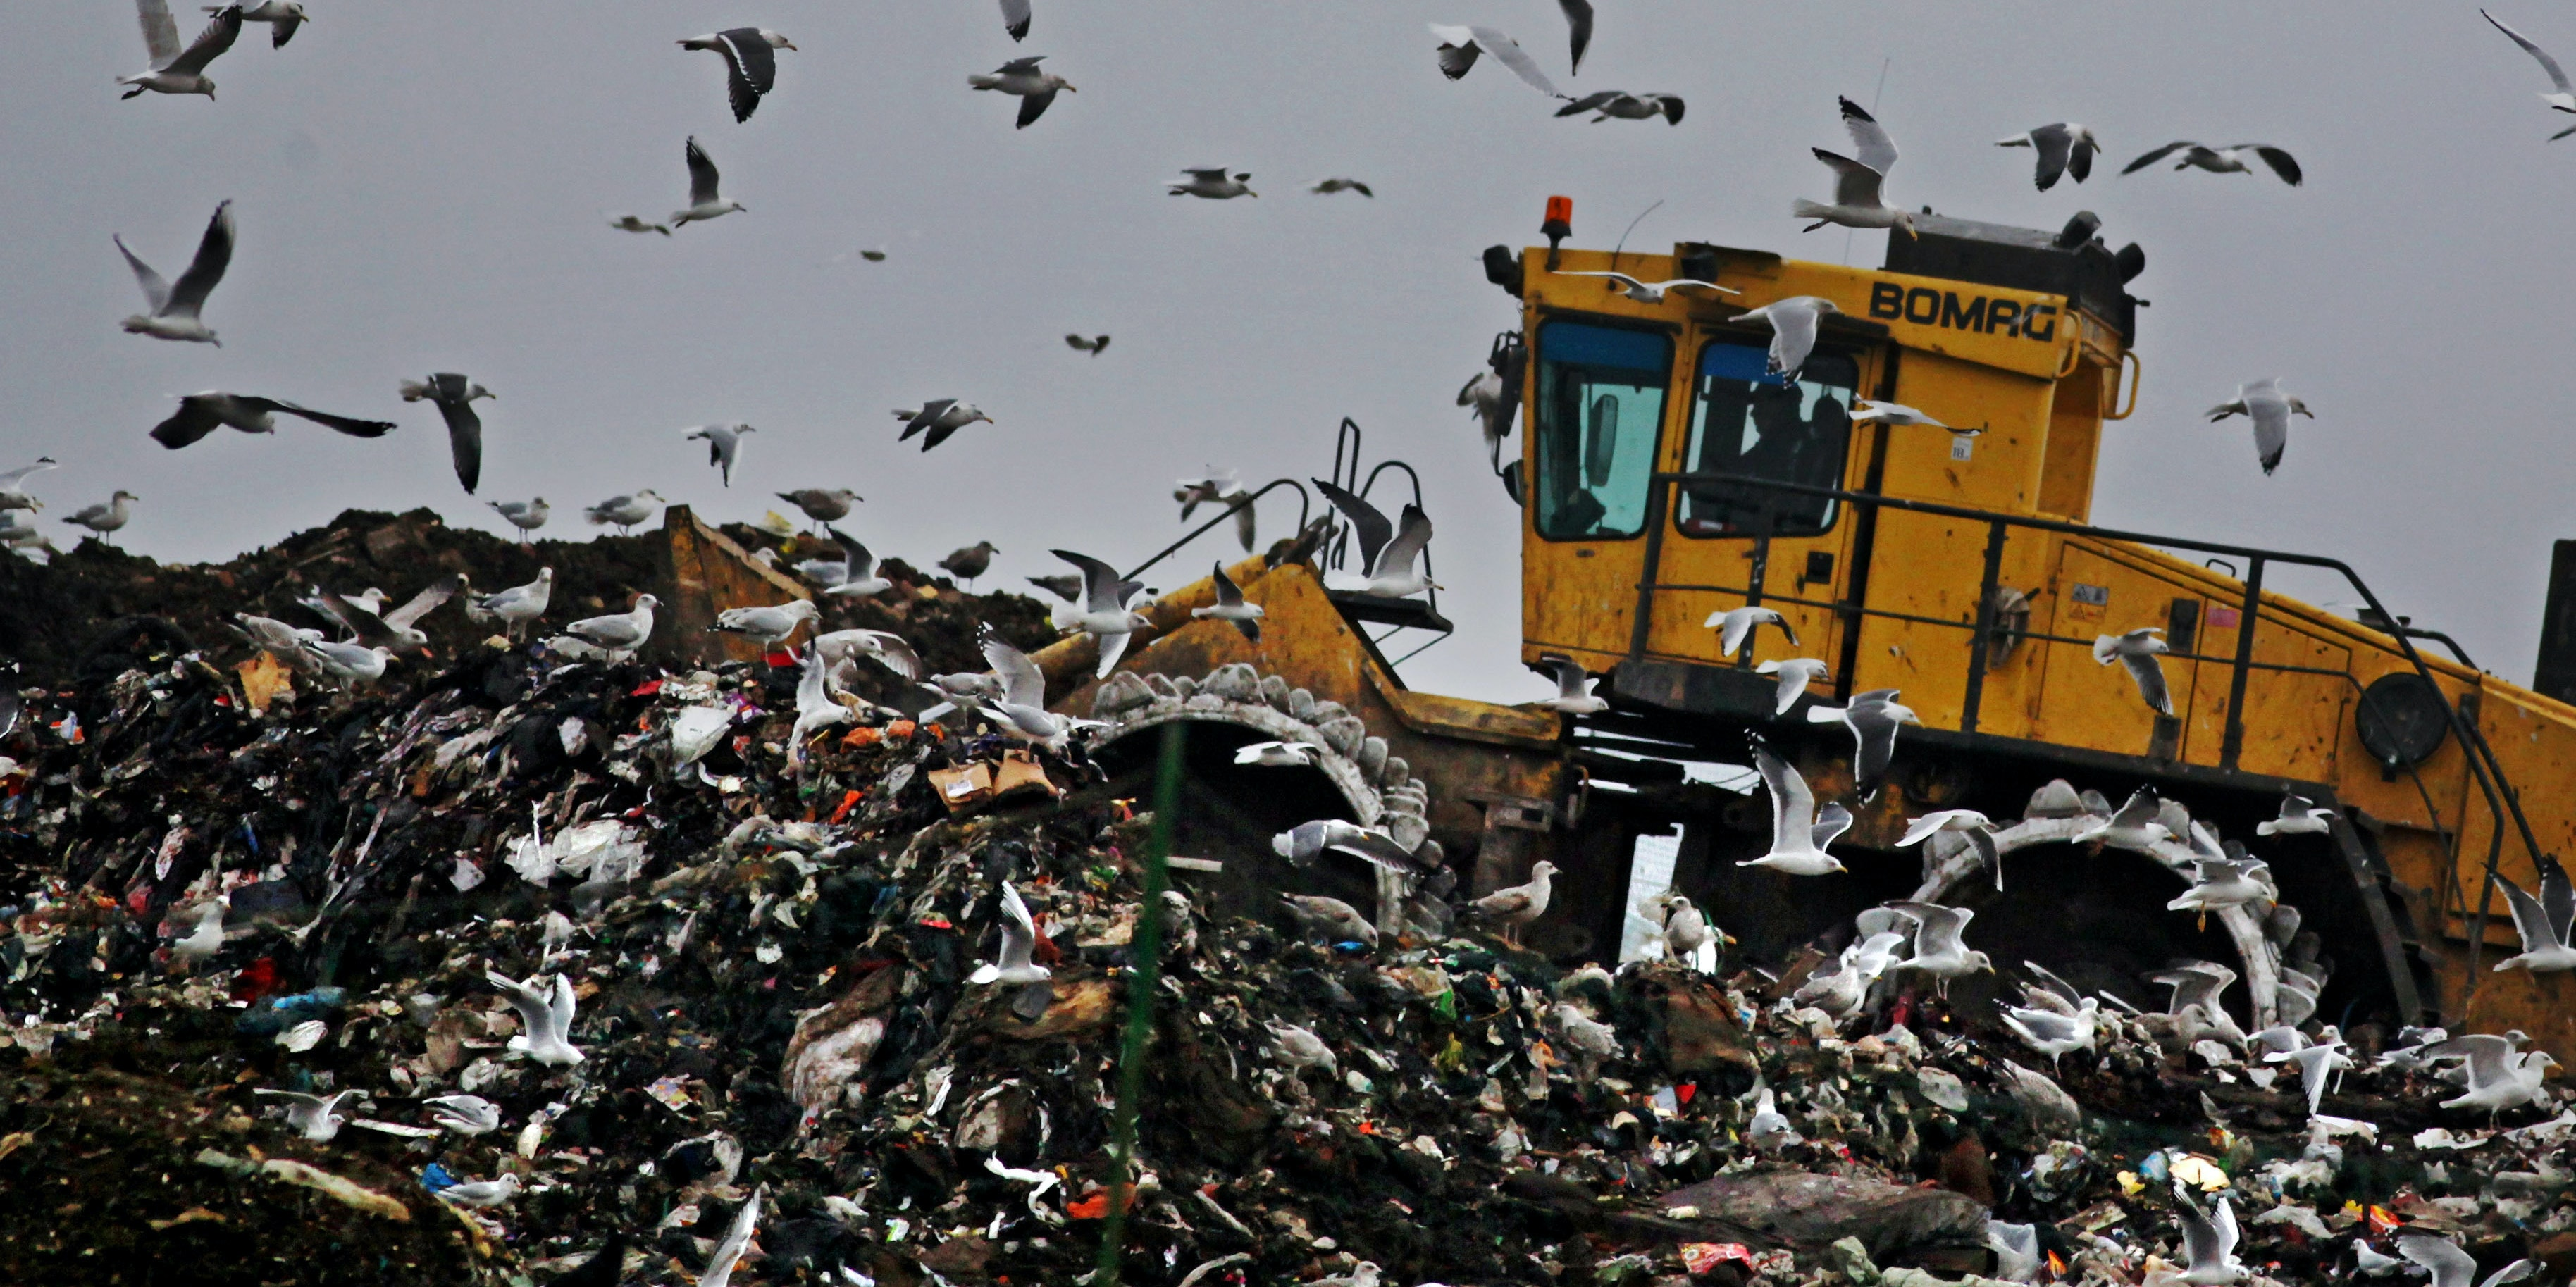 Seagulls fly around as a bulldozer compacts freshly dumped rubbish at a landfill site on November 18, 2009 in Gloucester, England.